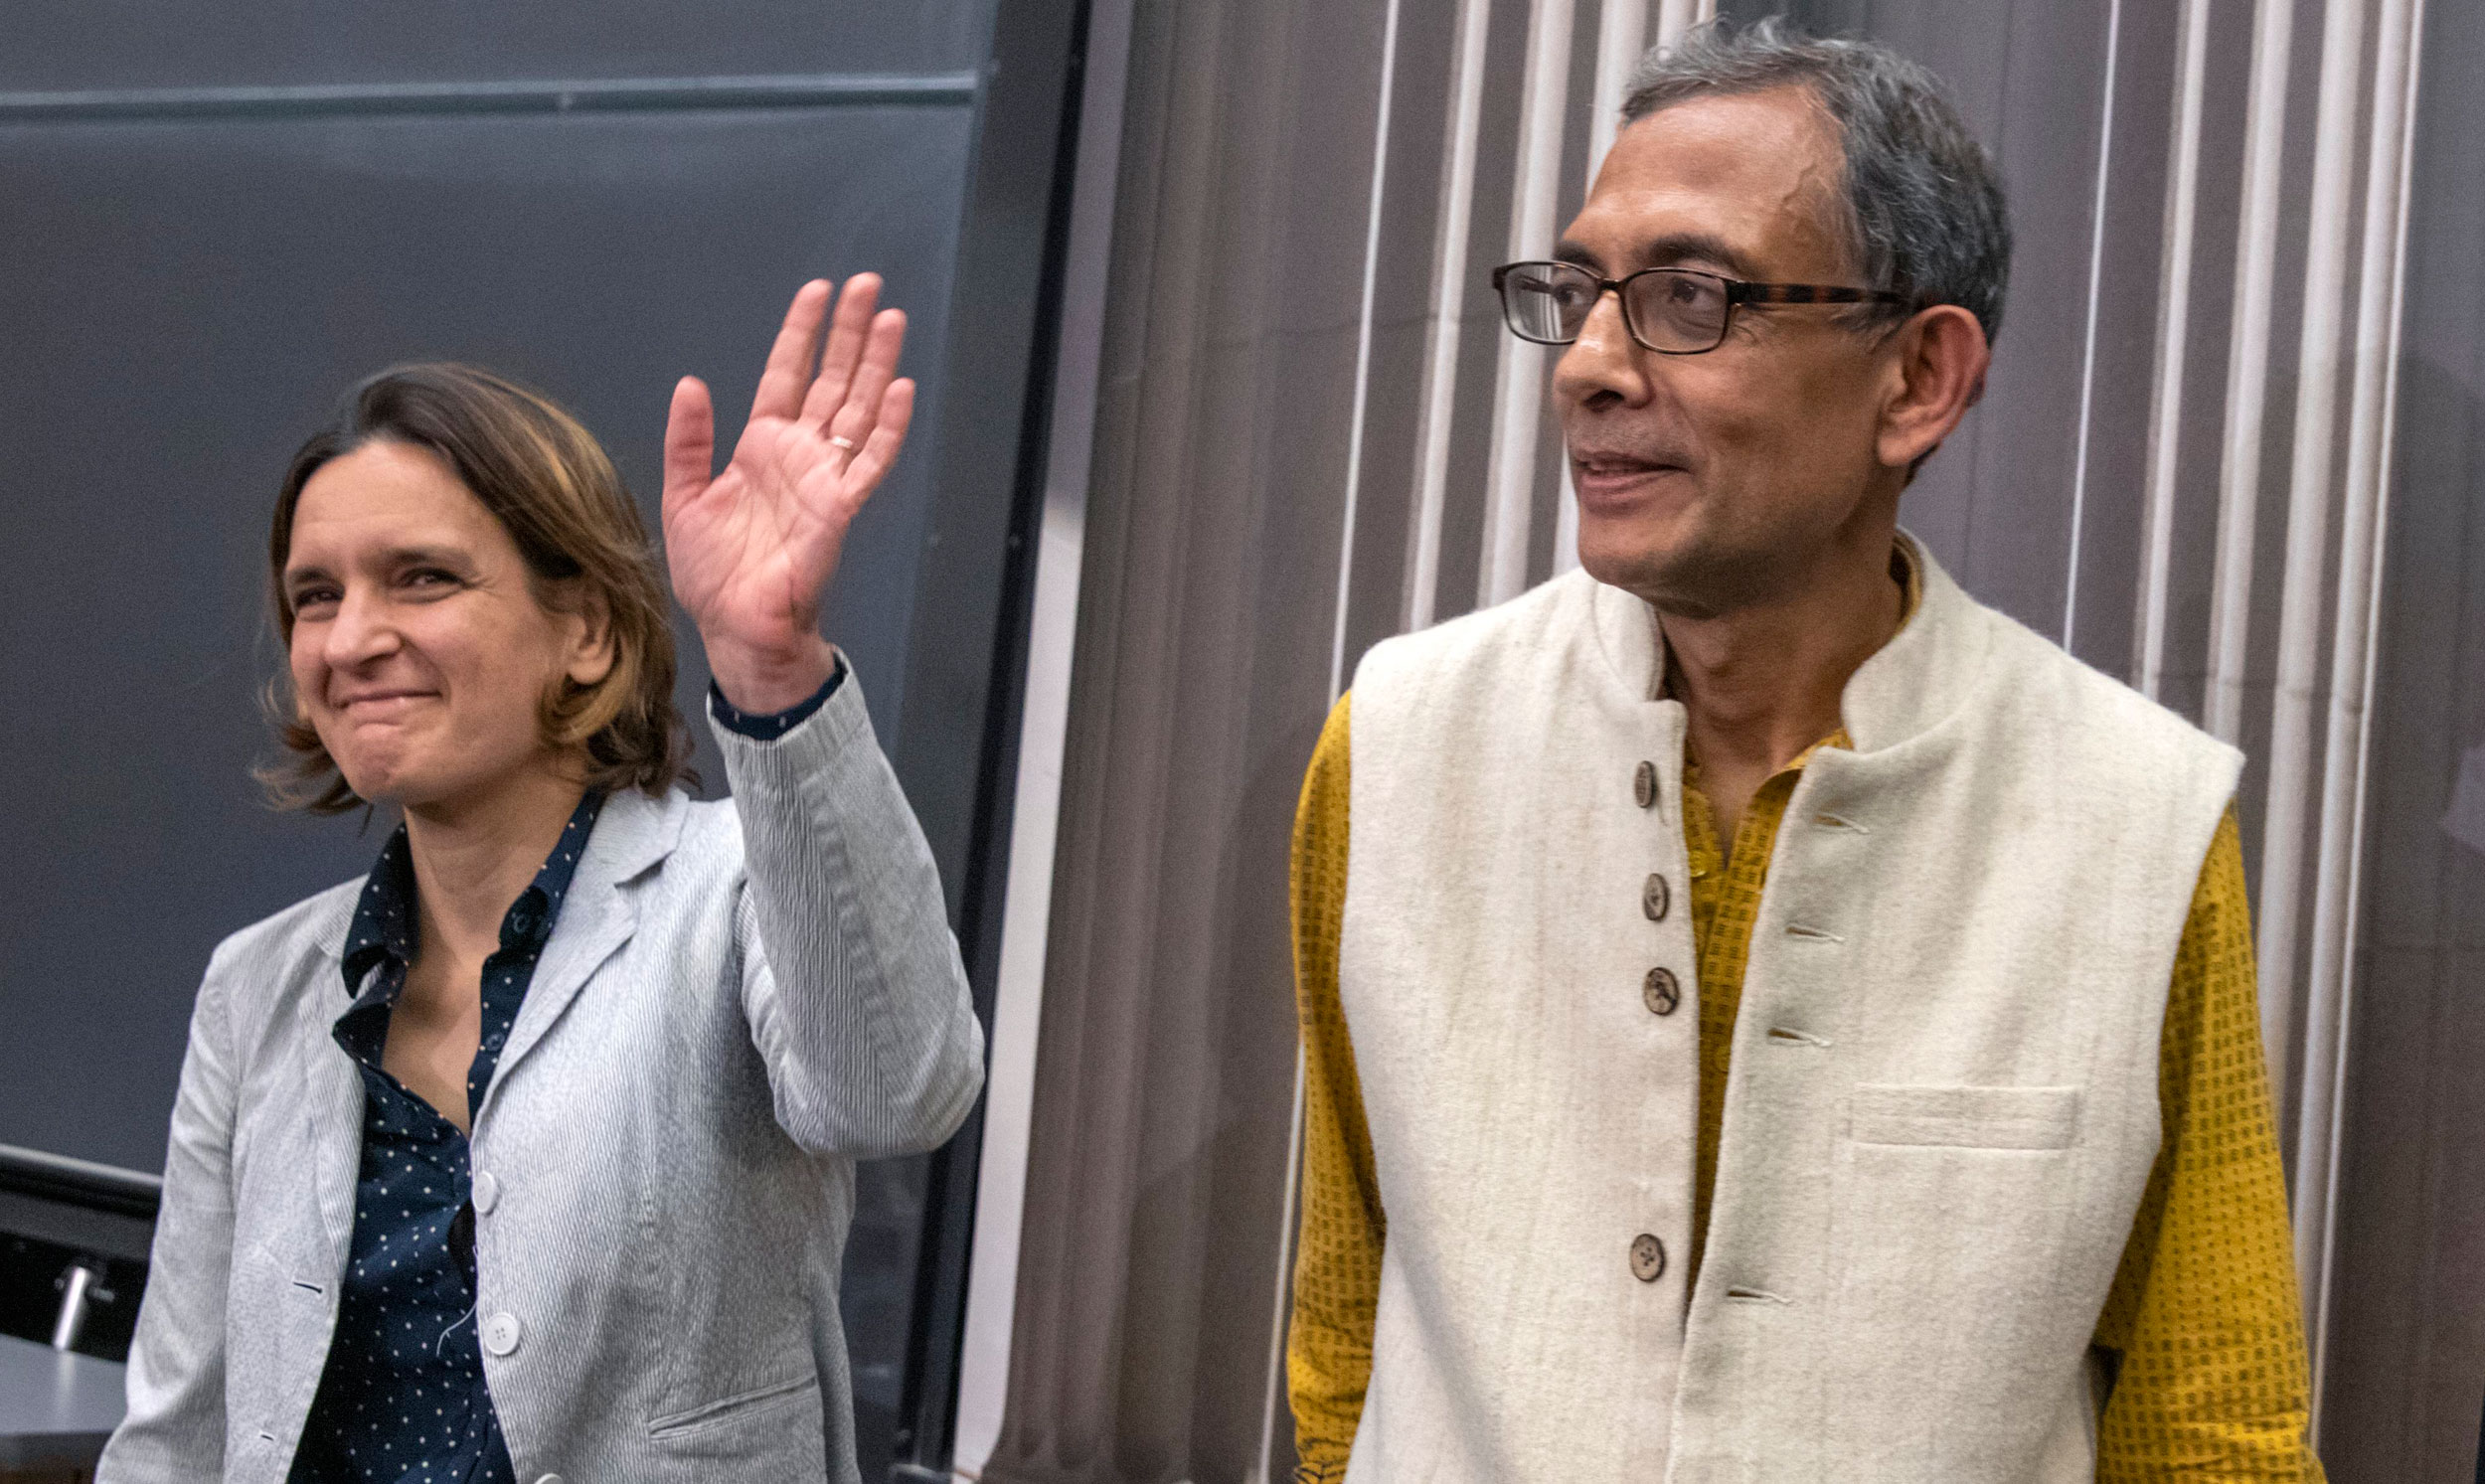 Abhijit Banerjee and Esther Duflo after a news conference at Massachusetts Institute of Technology in Cambridge on October 14.